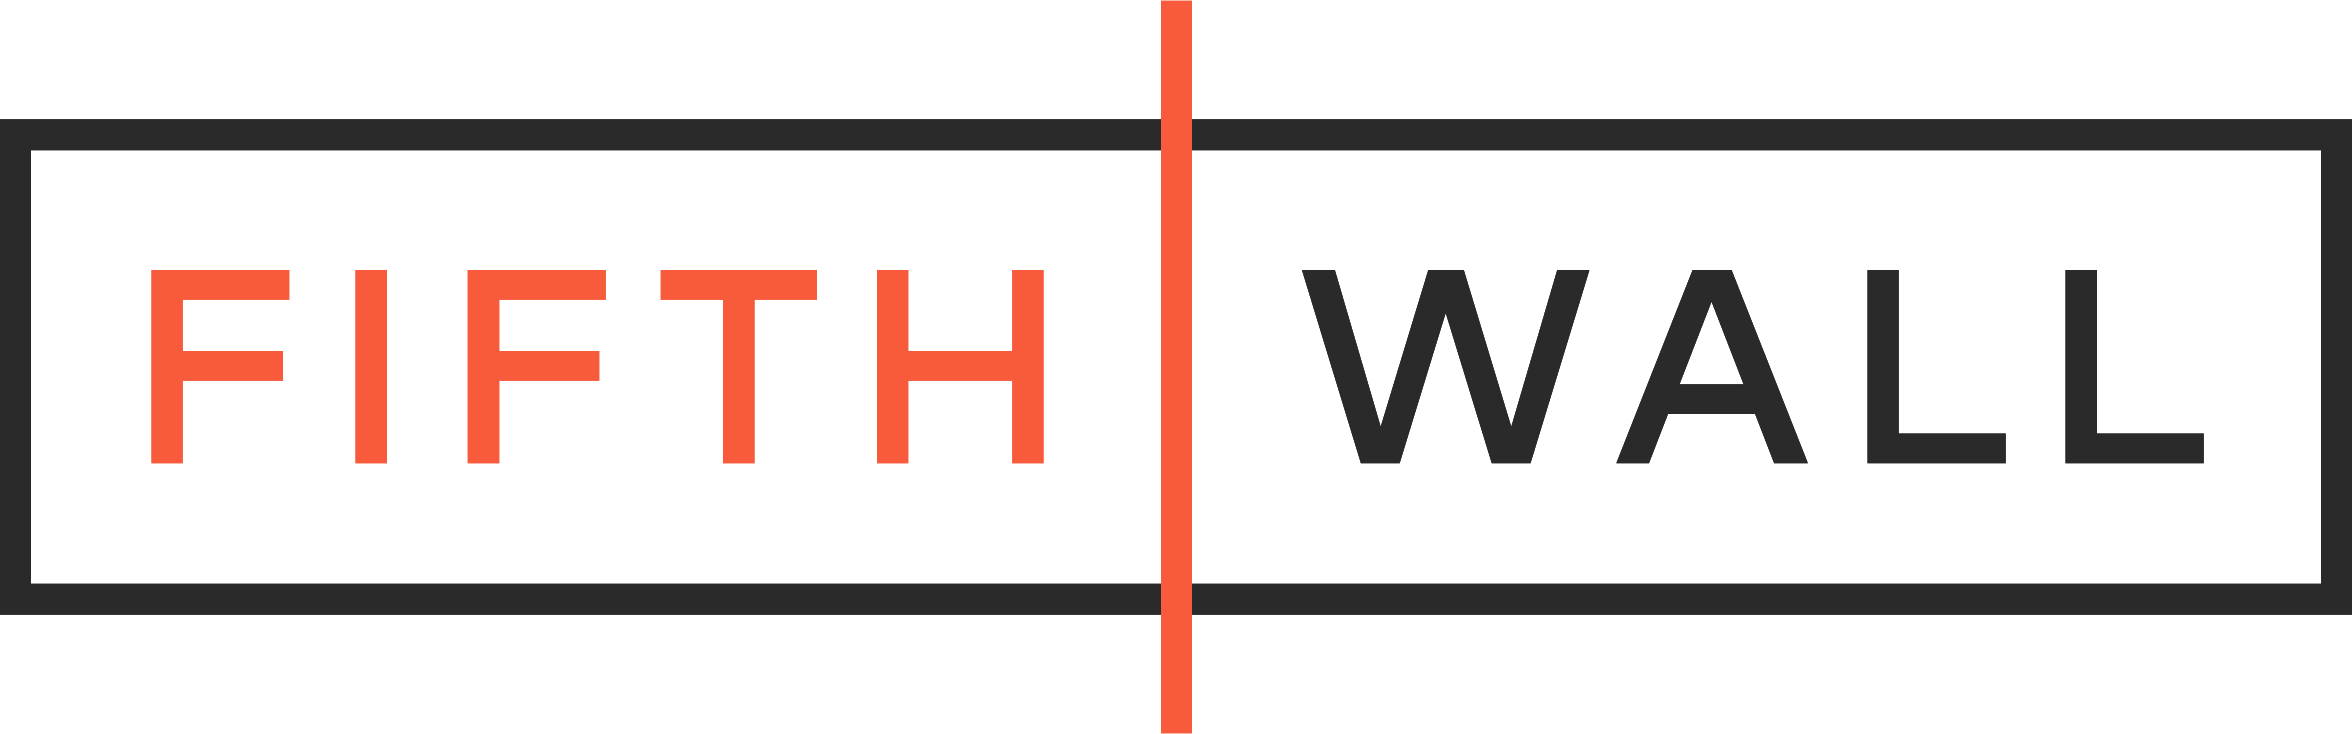 Fifth Wall logo